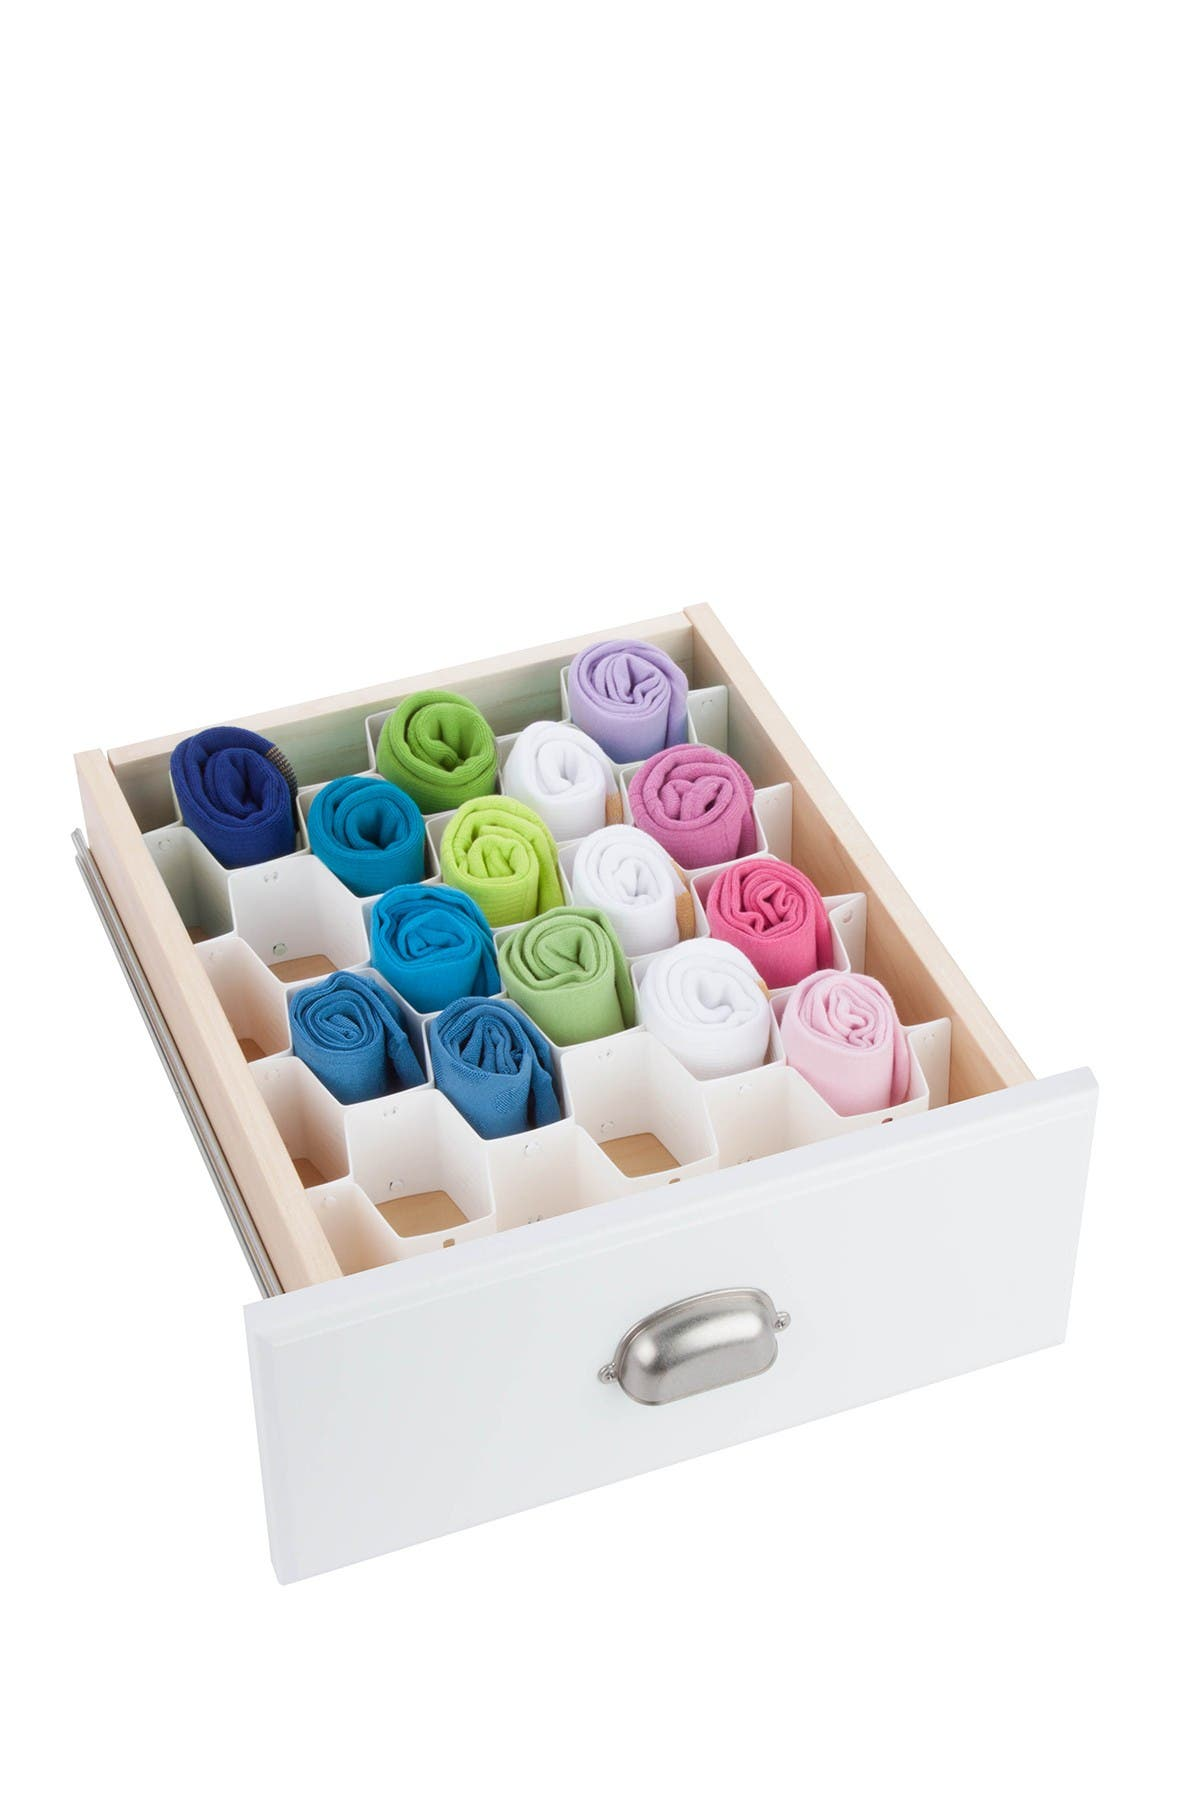 Image of Honey-Can-Do White 32 Compartment Drawer Organizer